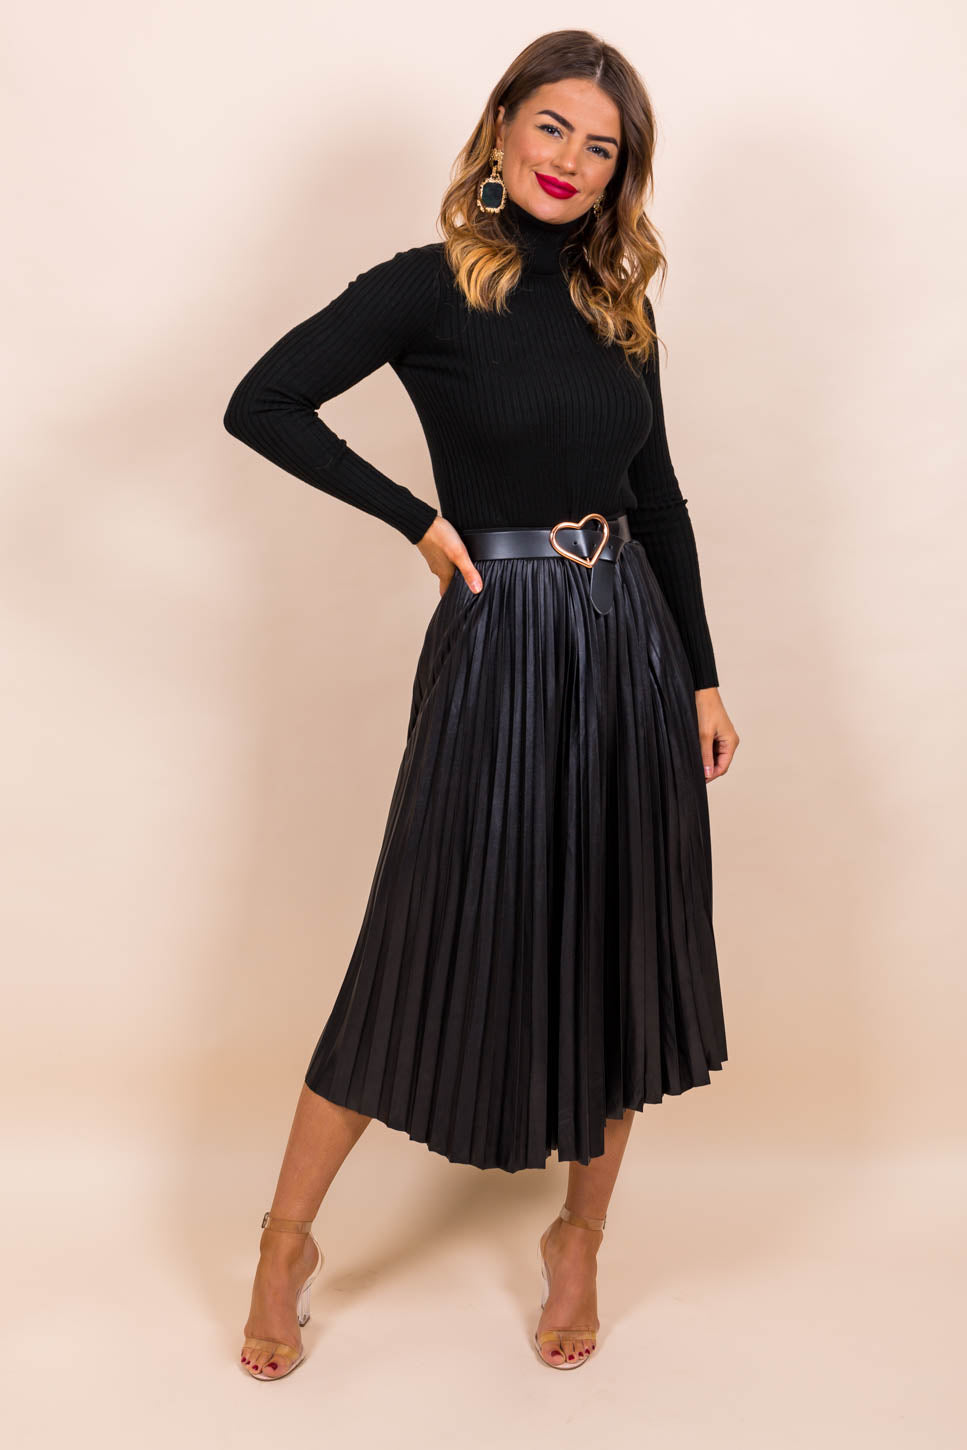 https://cdn.shopify.com/s/files/1/0062/6661/7925/files/product-video-pleat_me_halfway-skirt-in-black.mp4?5988